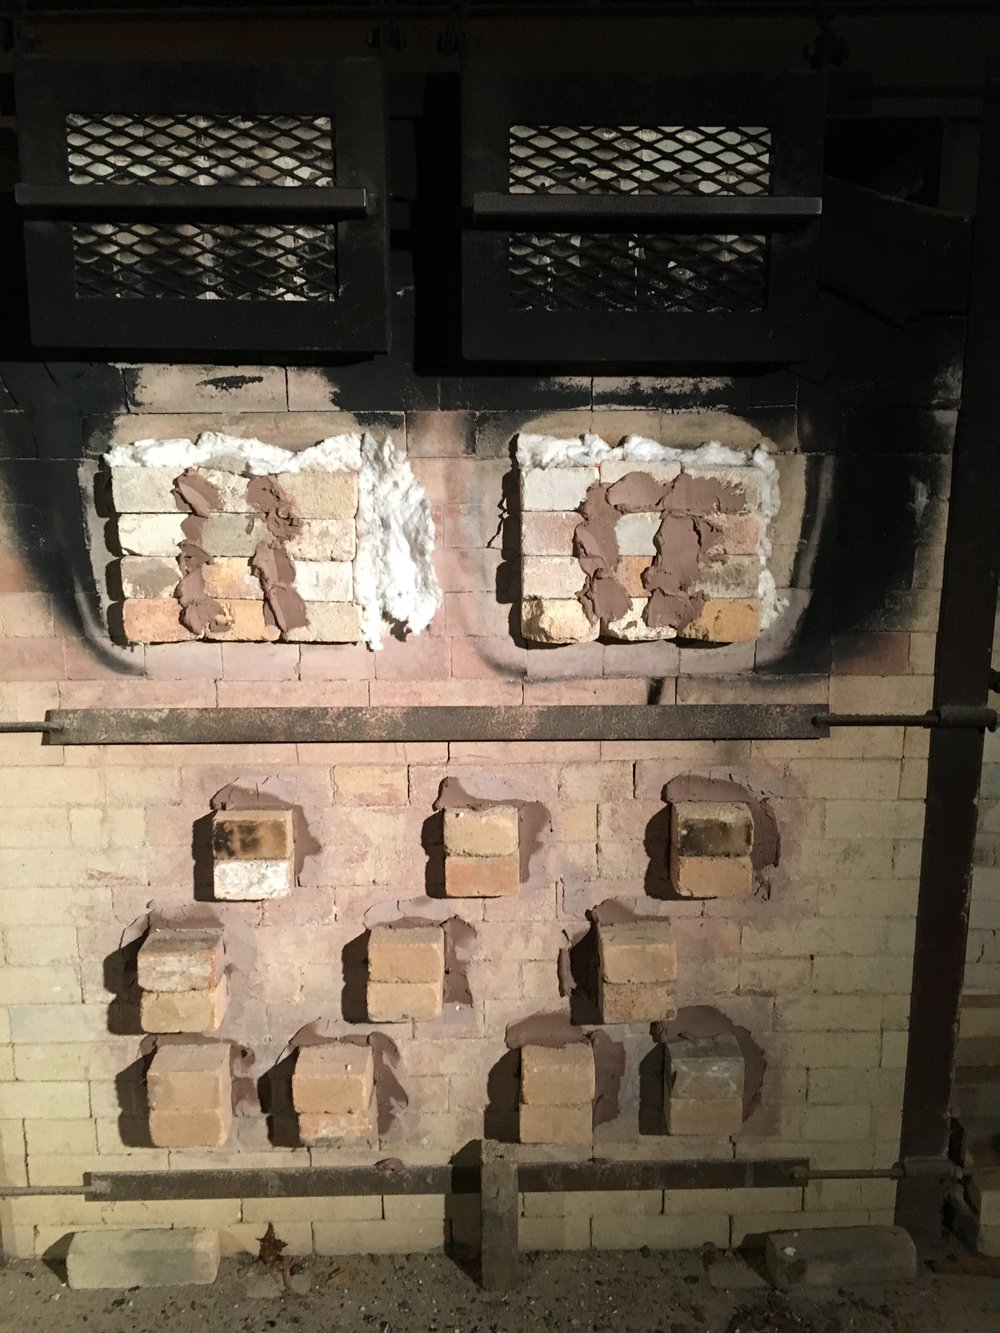 Kiln closed for cool-down